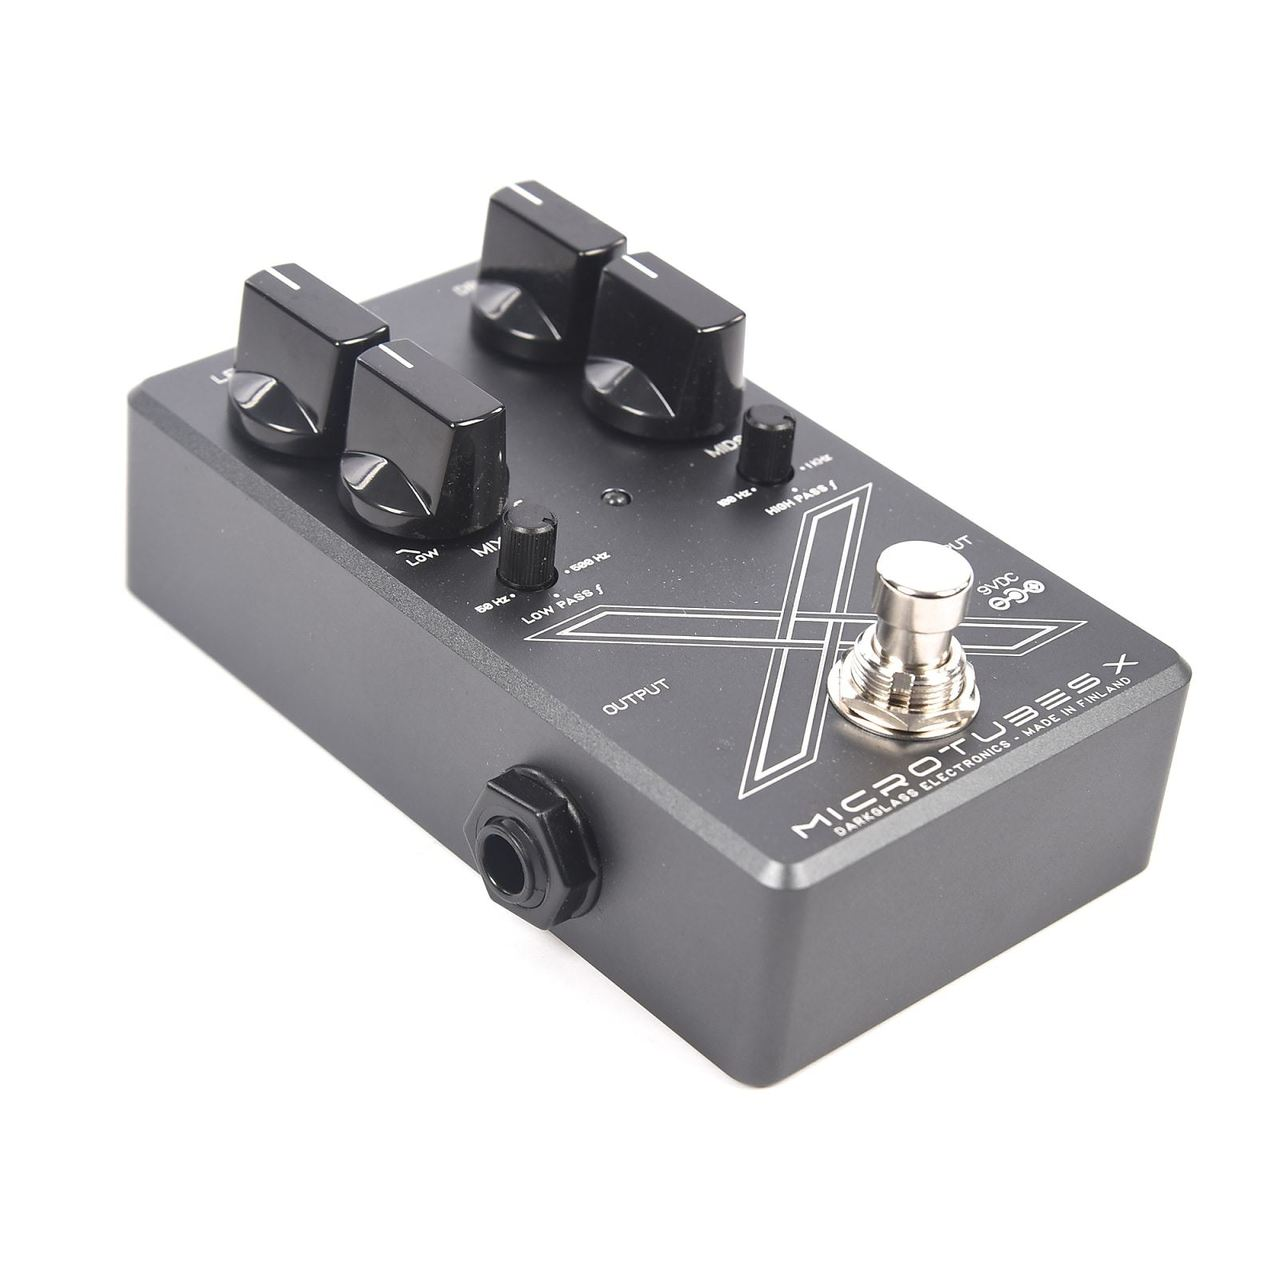 Darkglass Electronics X Multiband Distortion pedal